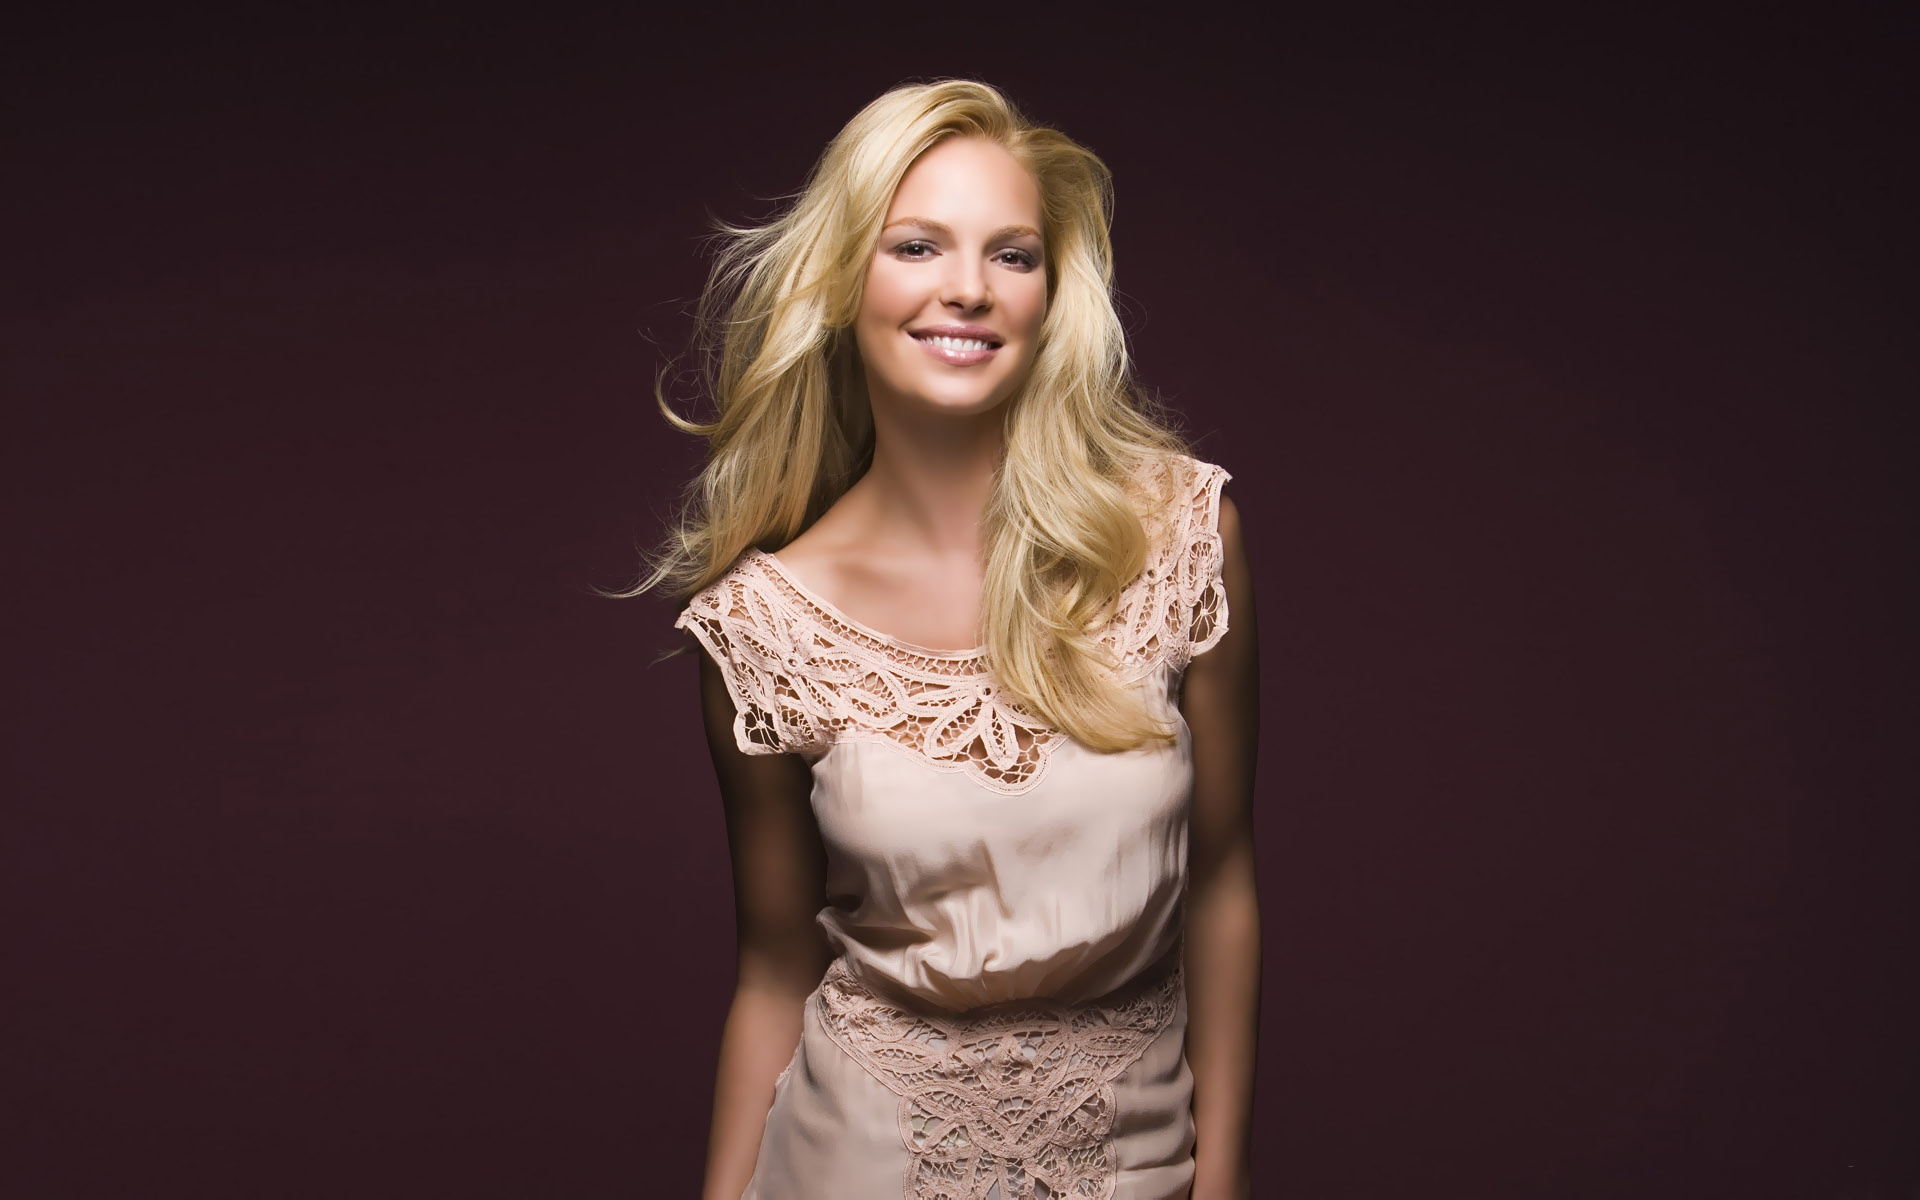 Beautiful Katherine Heigl wallpaper